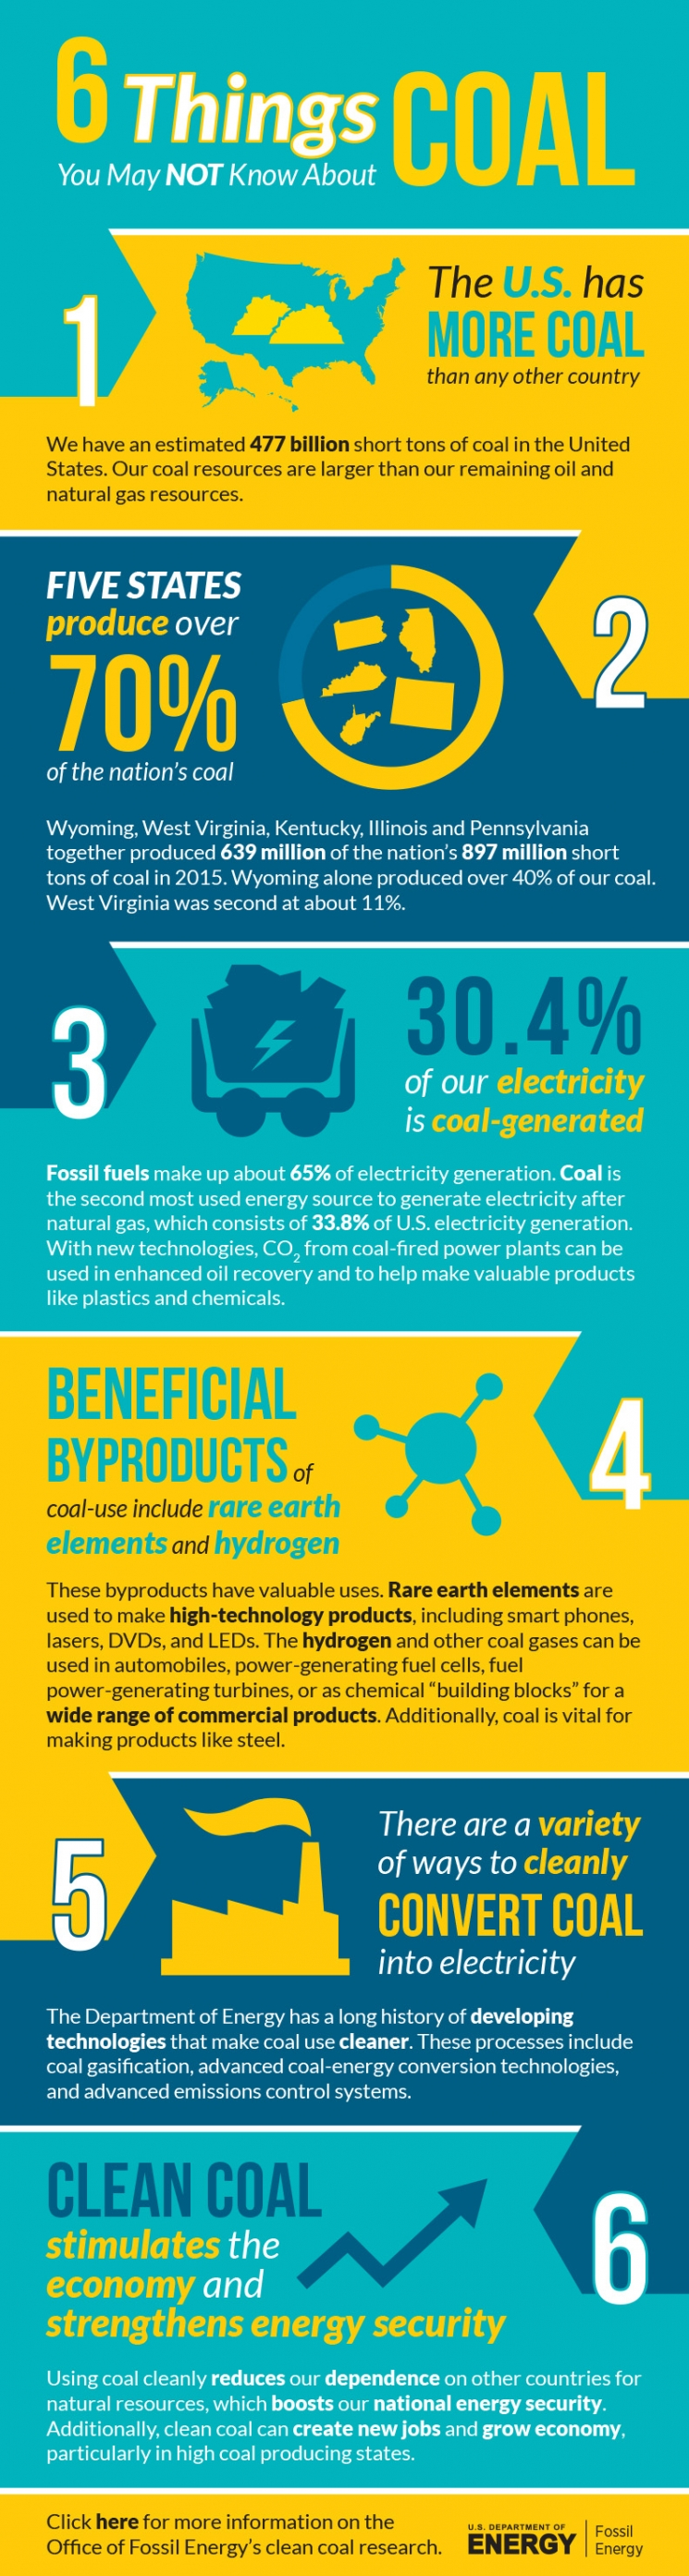 INFOGRAPHIC: 6 Things You May Not Know About Coal